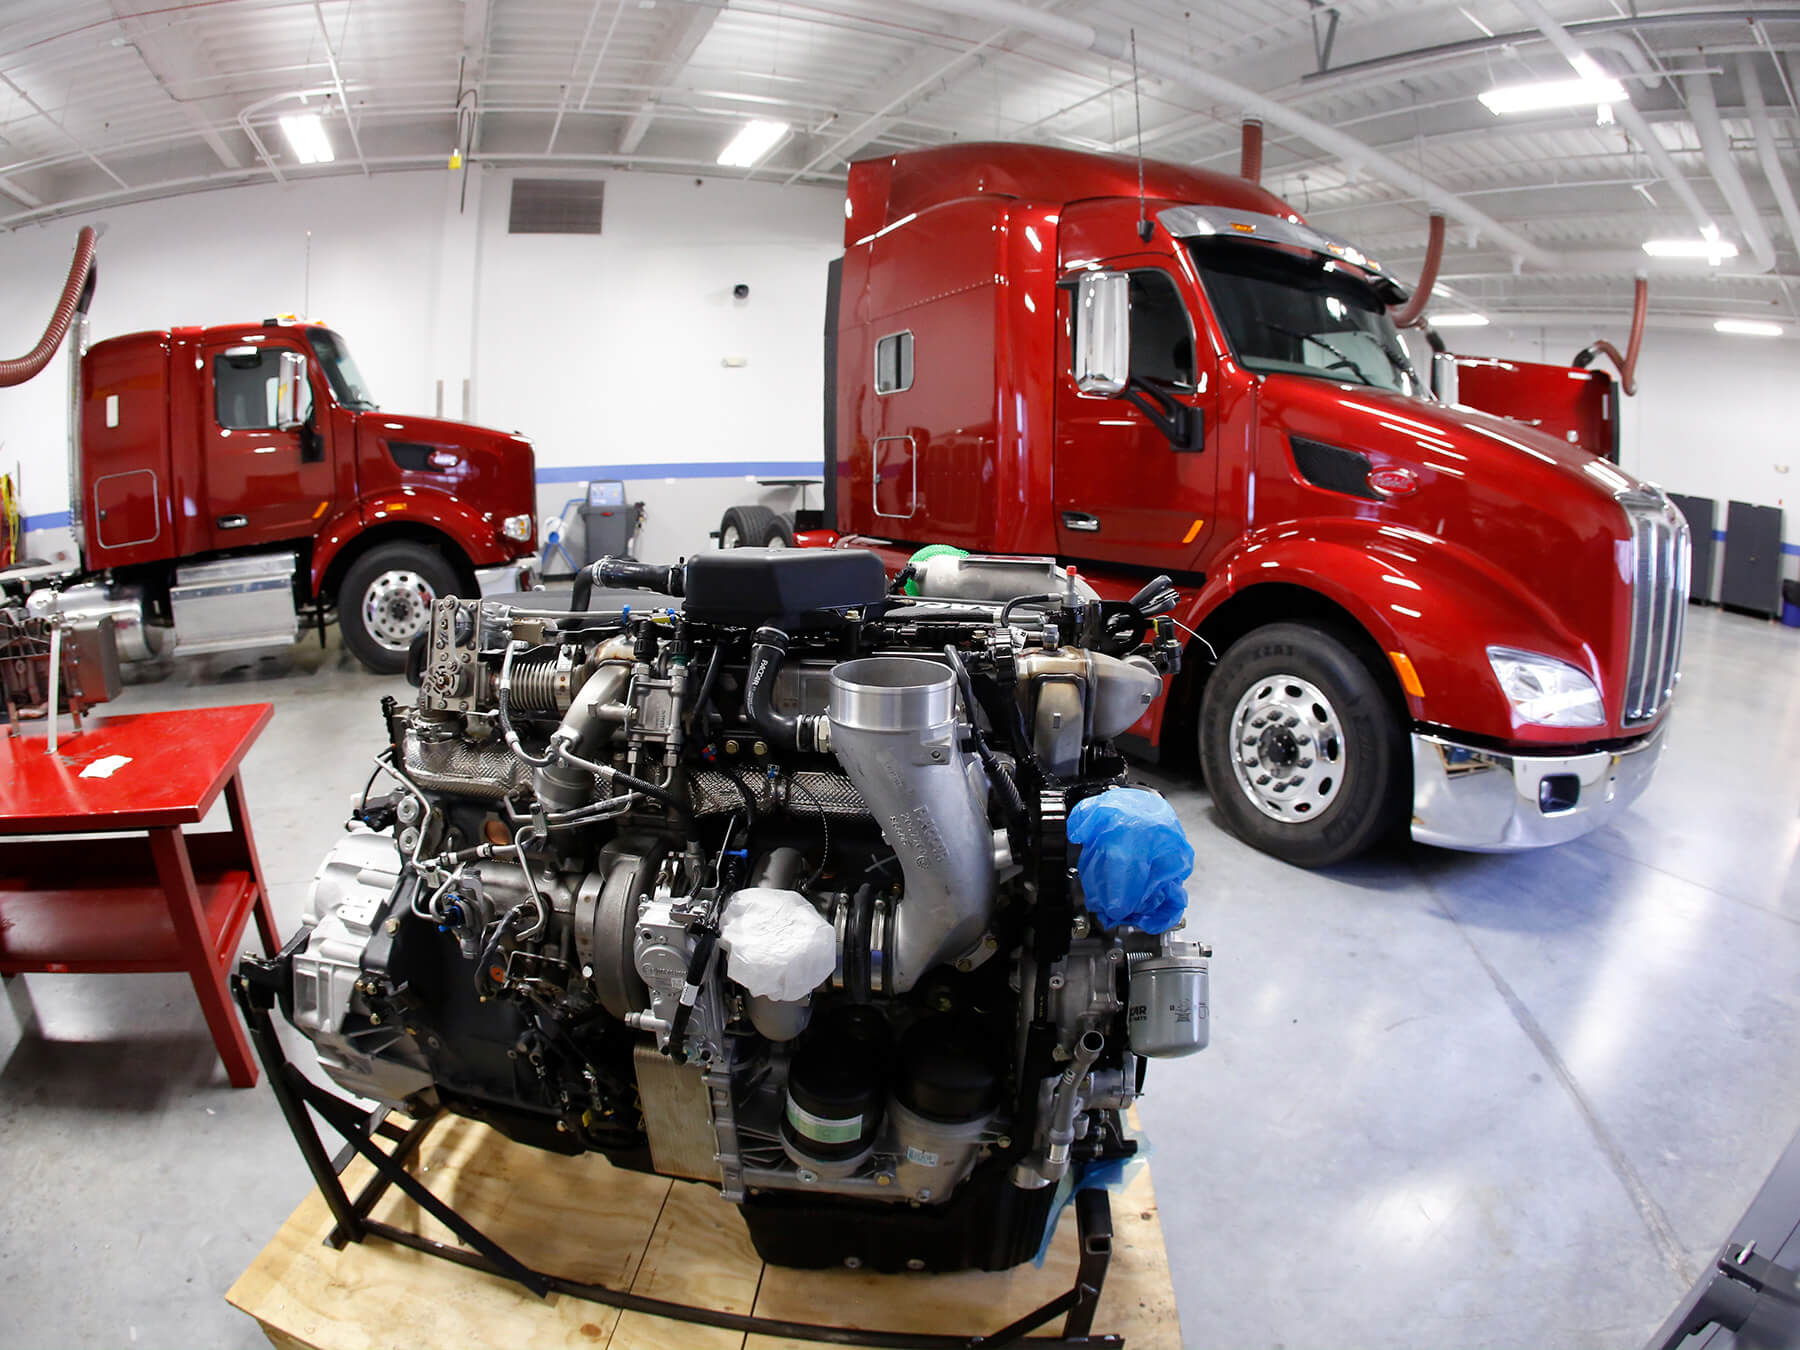 wide angle photo of a diesel engine and trucks inside the diesel lab